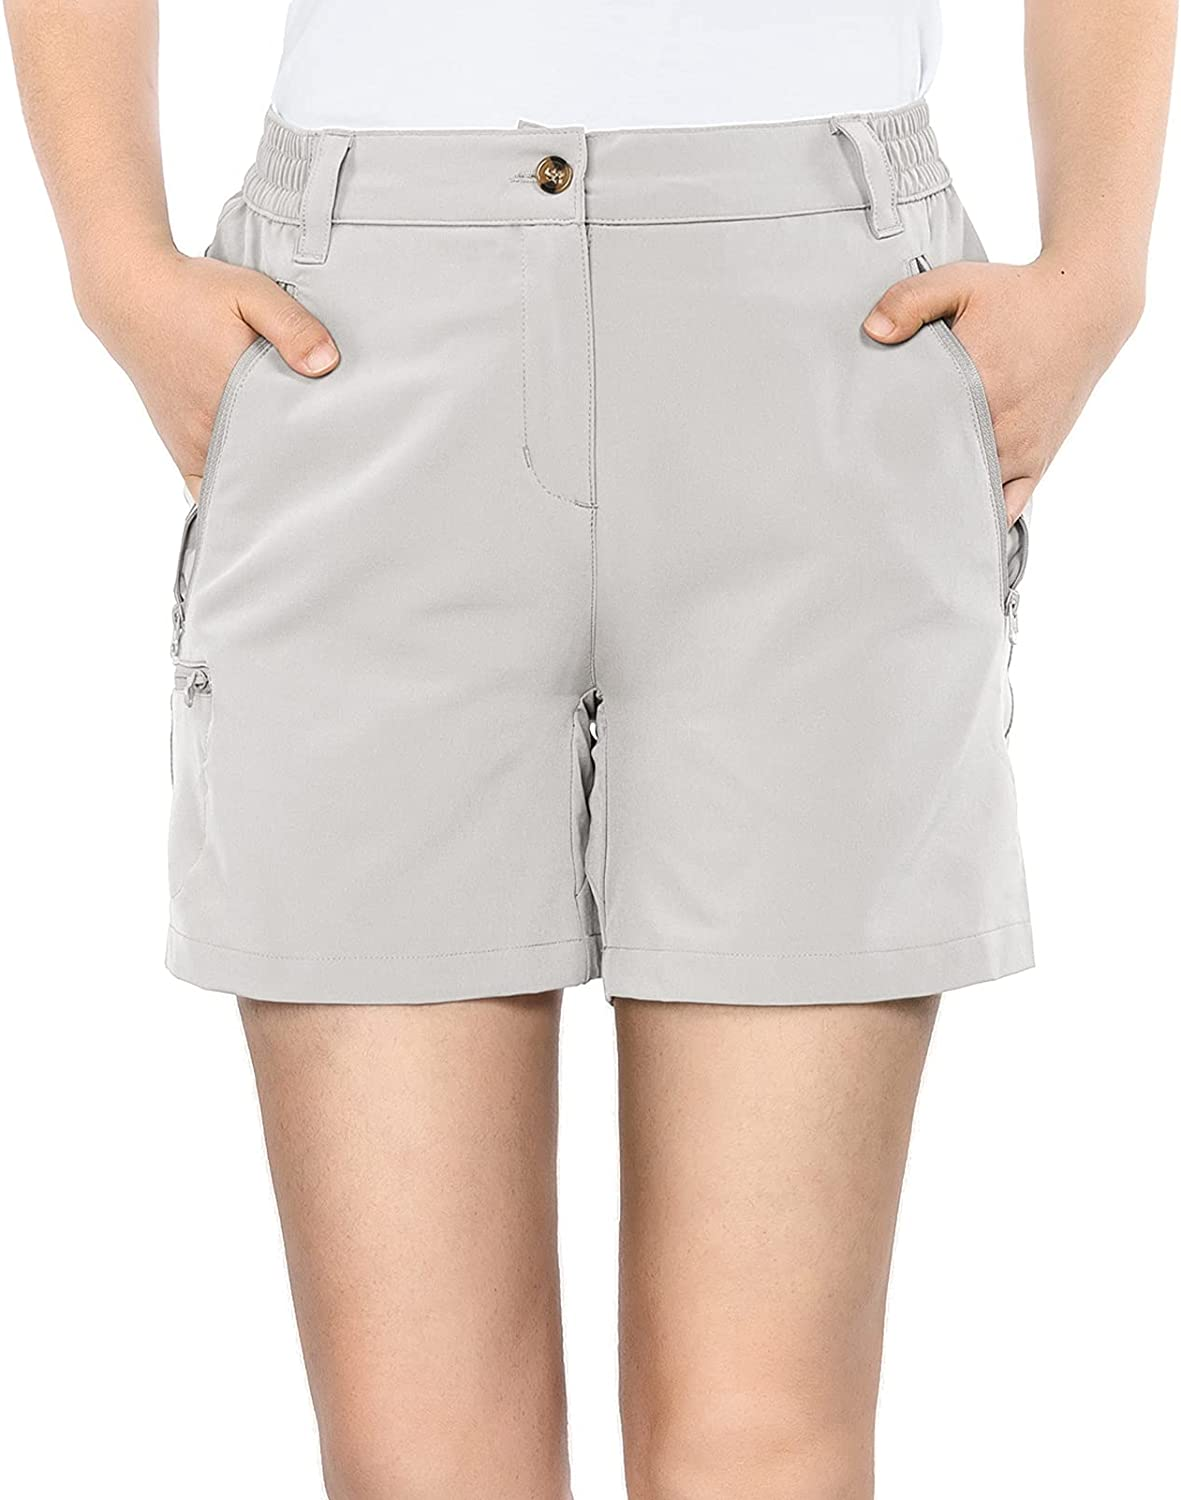 33 000ft Max Ranking TOP4 49% OFF Women's Hiking Shorts Cargo for Dry Quick